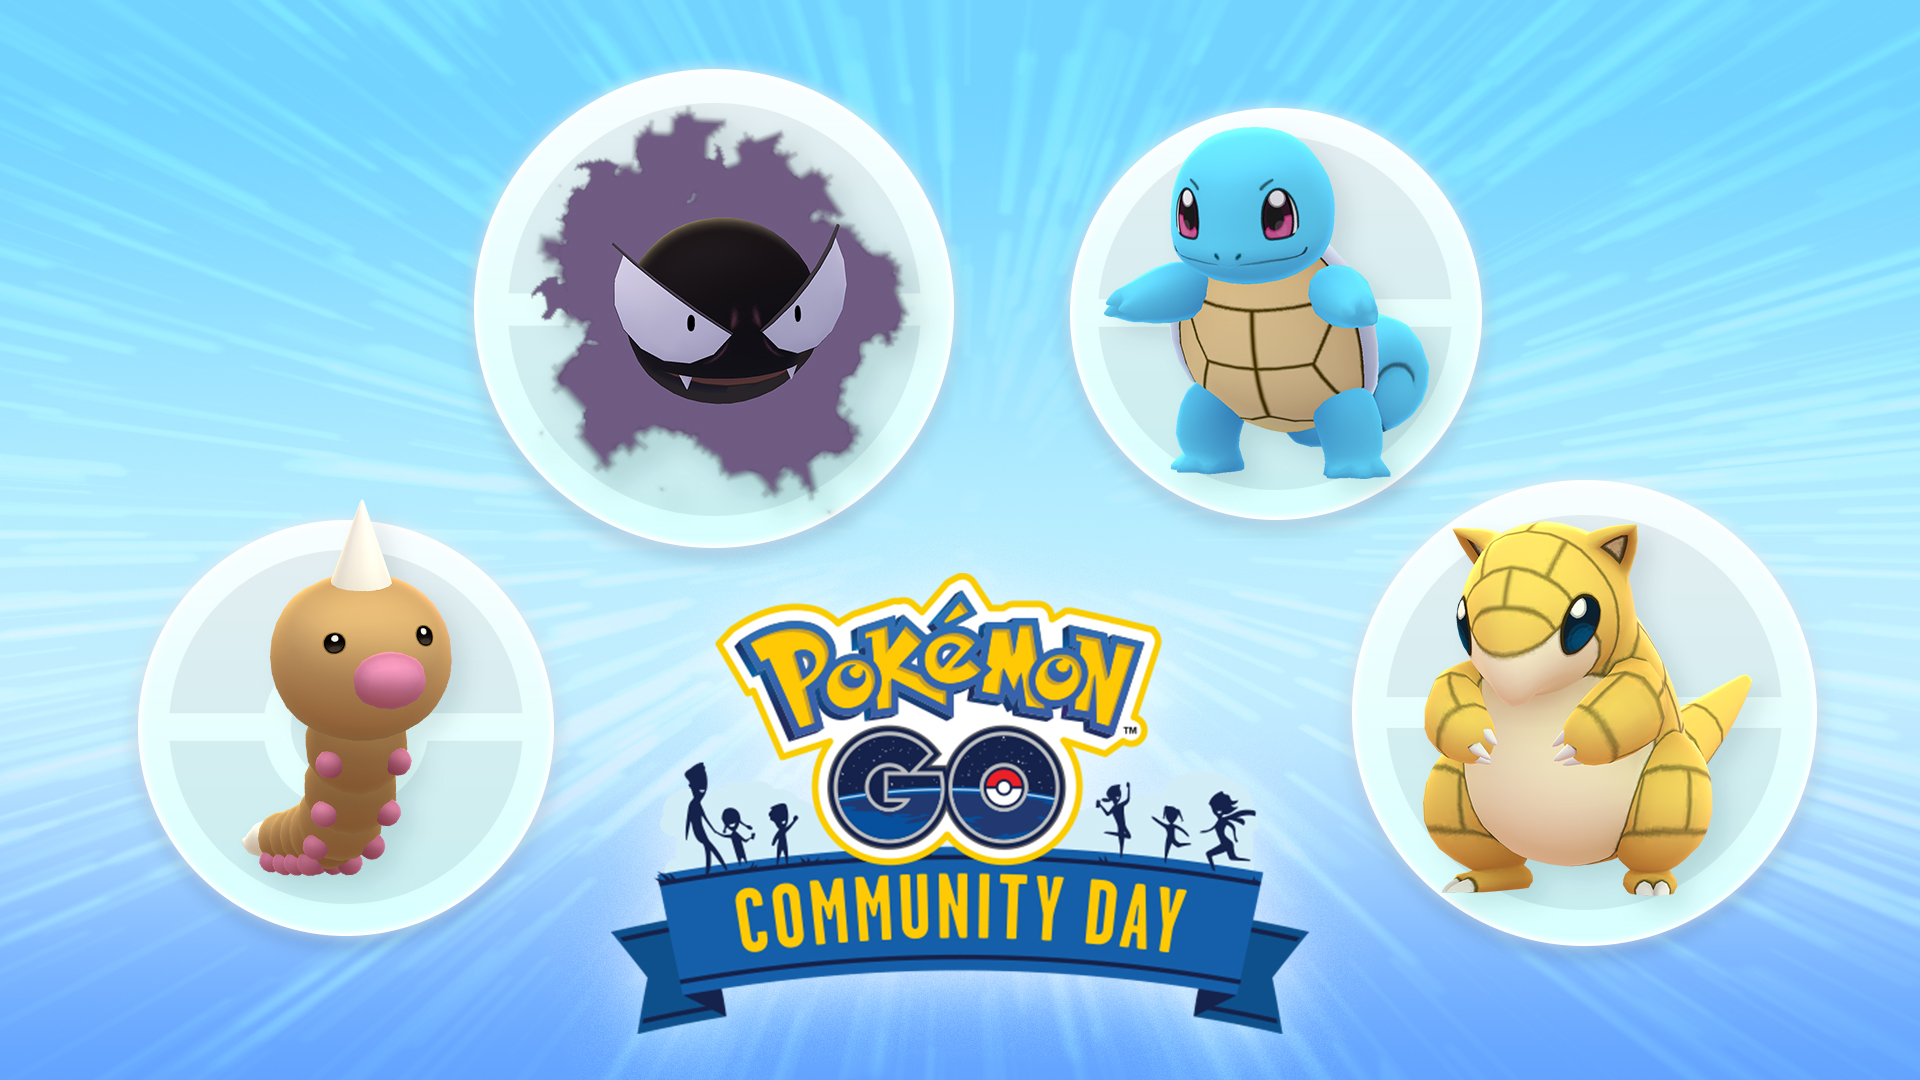 Pokemon Go will hold a vote to determine which Pokemon will feature in the June and July Community Days